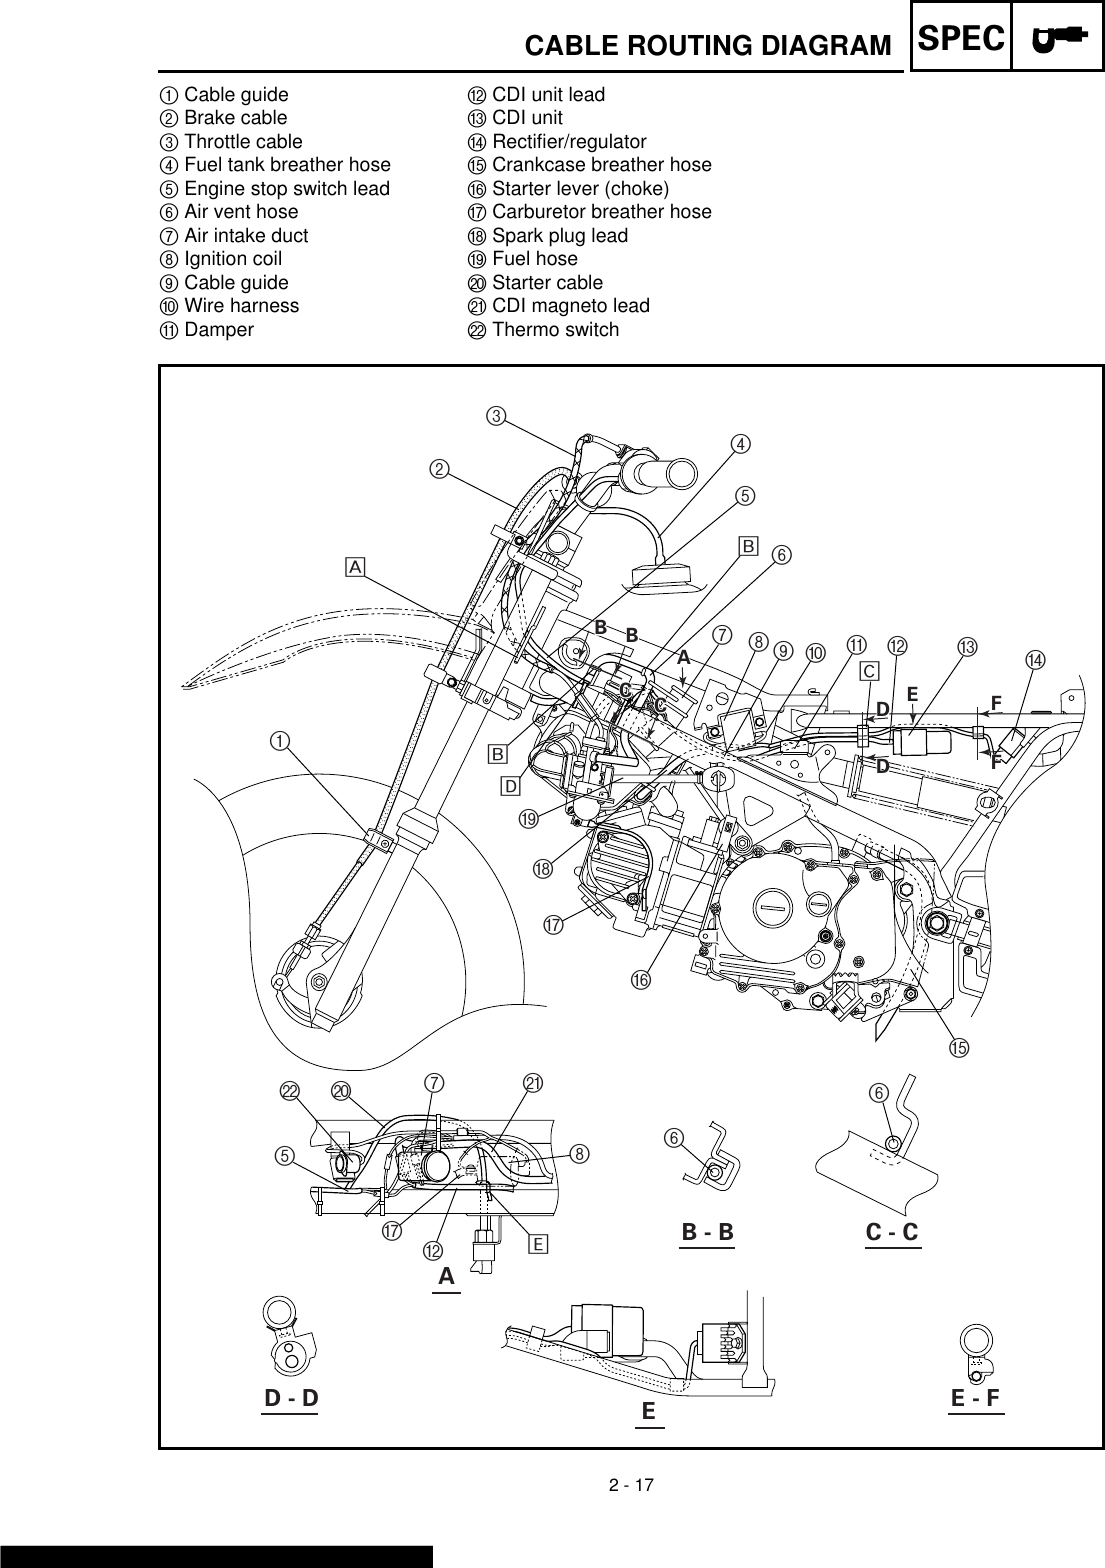 Yamaha Ttr90 Owners Manual Manualslib Makes It Easy To Find Manuals Online